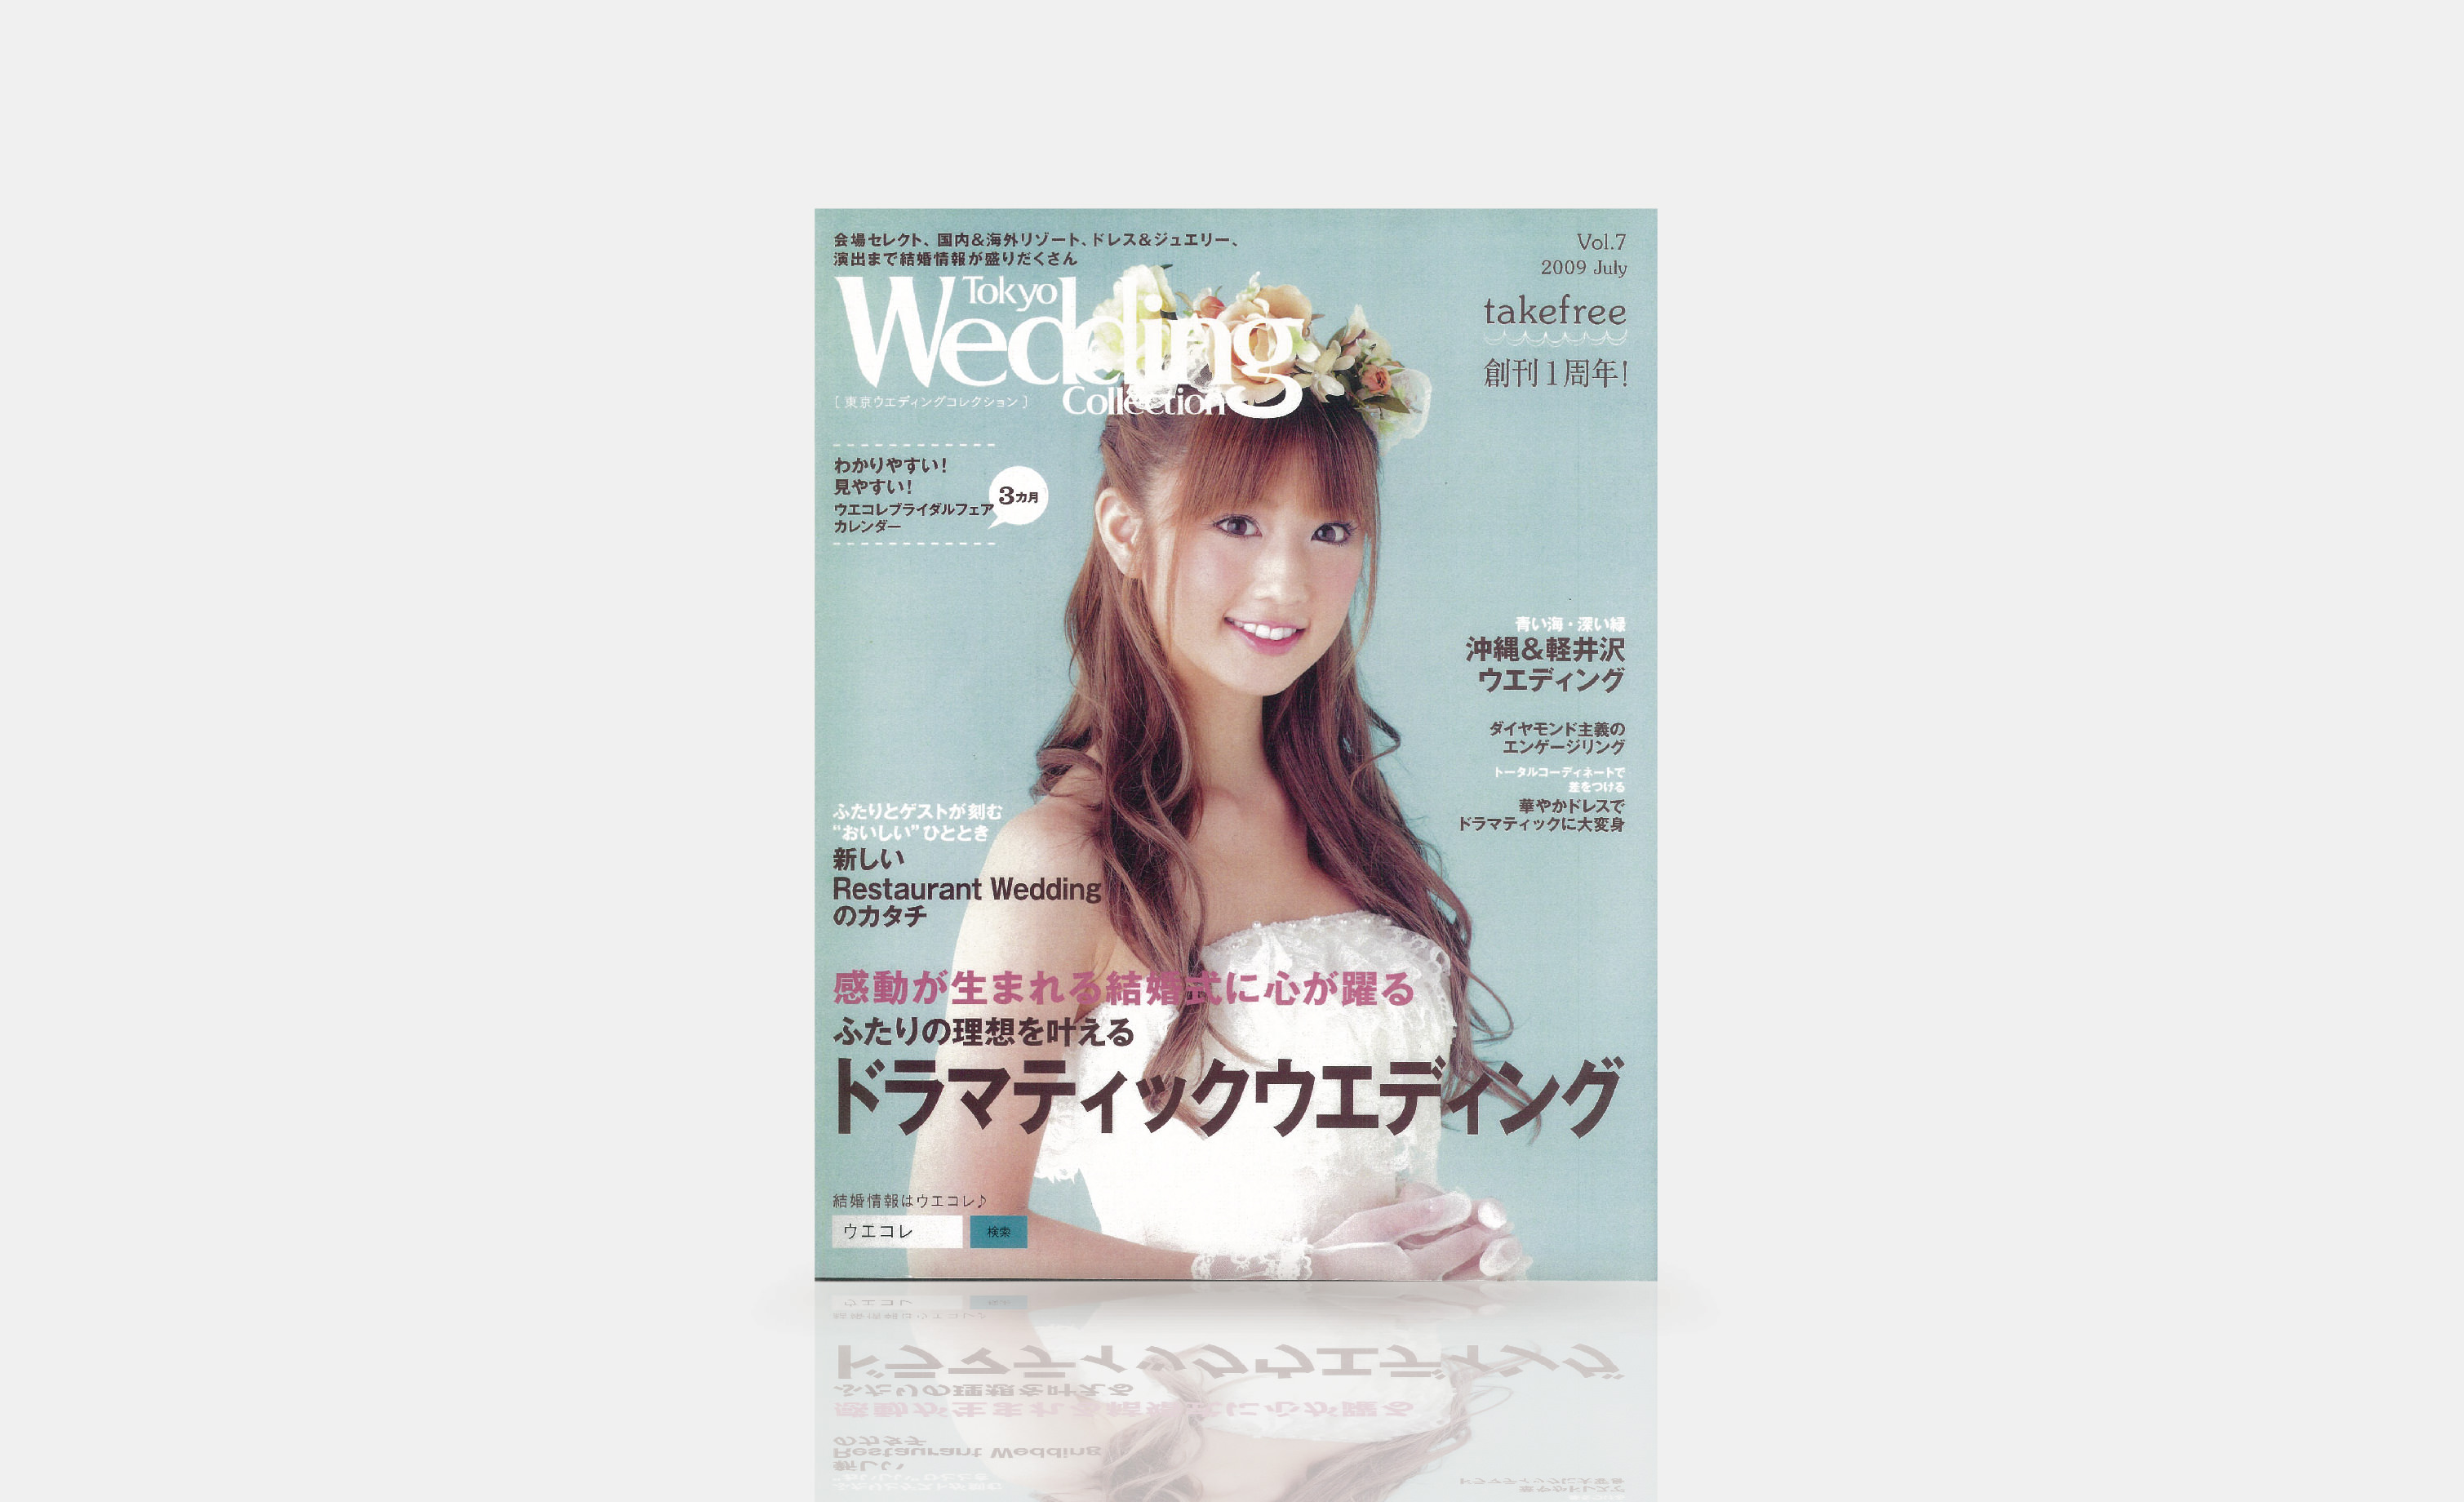 YUKO OGURA 2007 TOKYO WEDDING COLLECTION BOOK